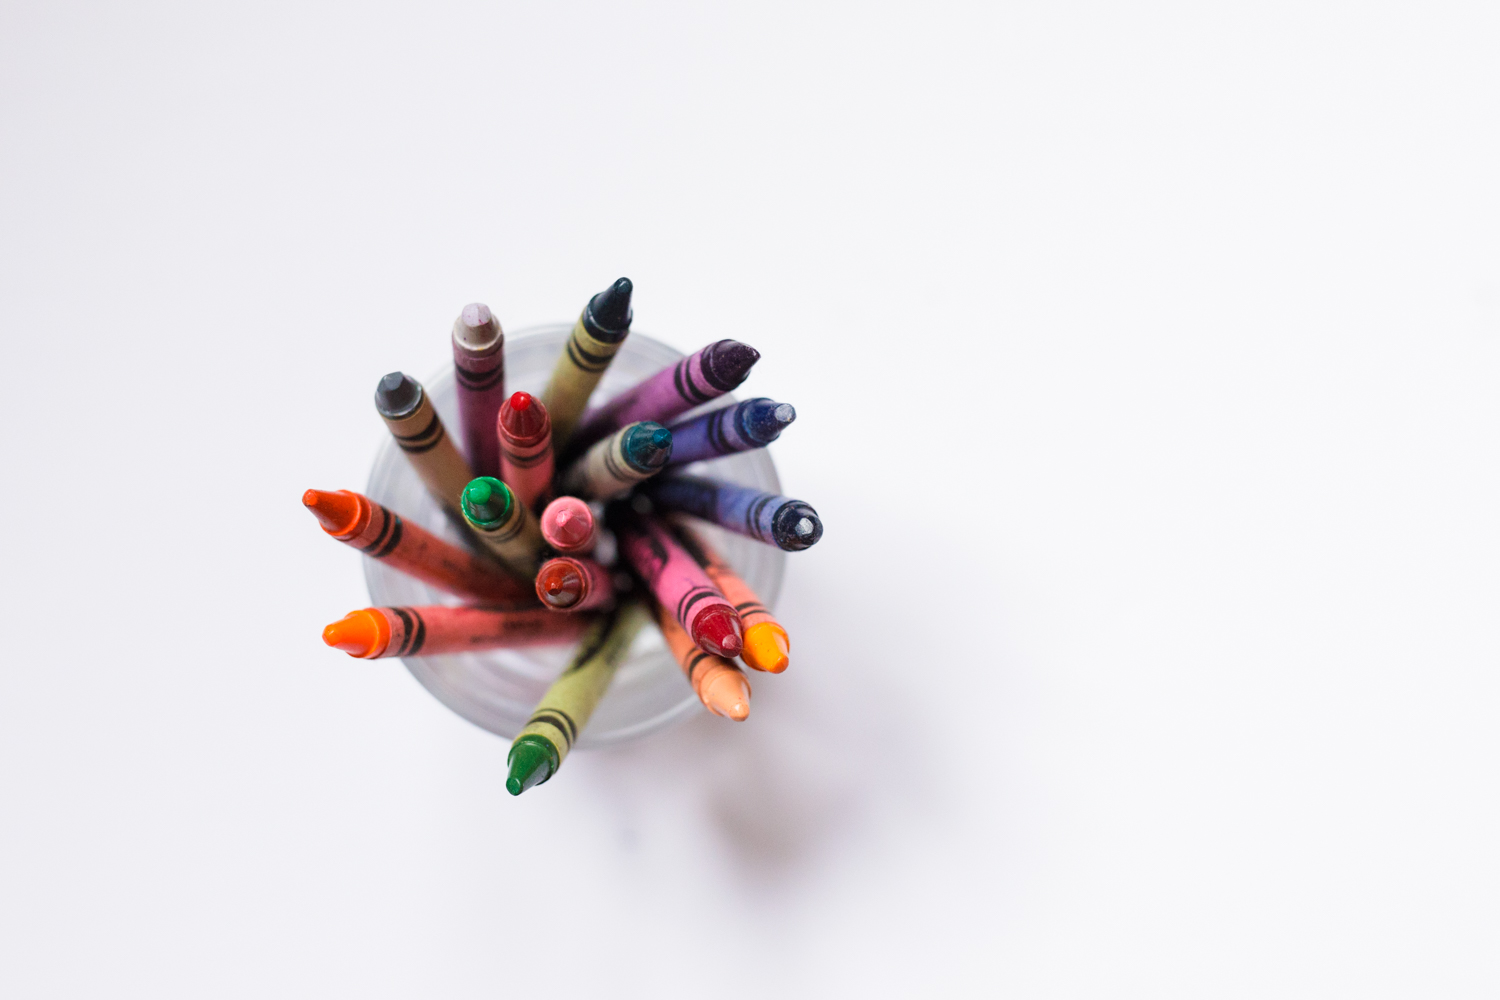 crayons in a glass